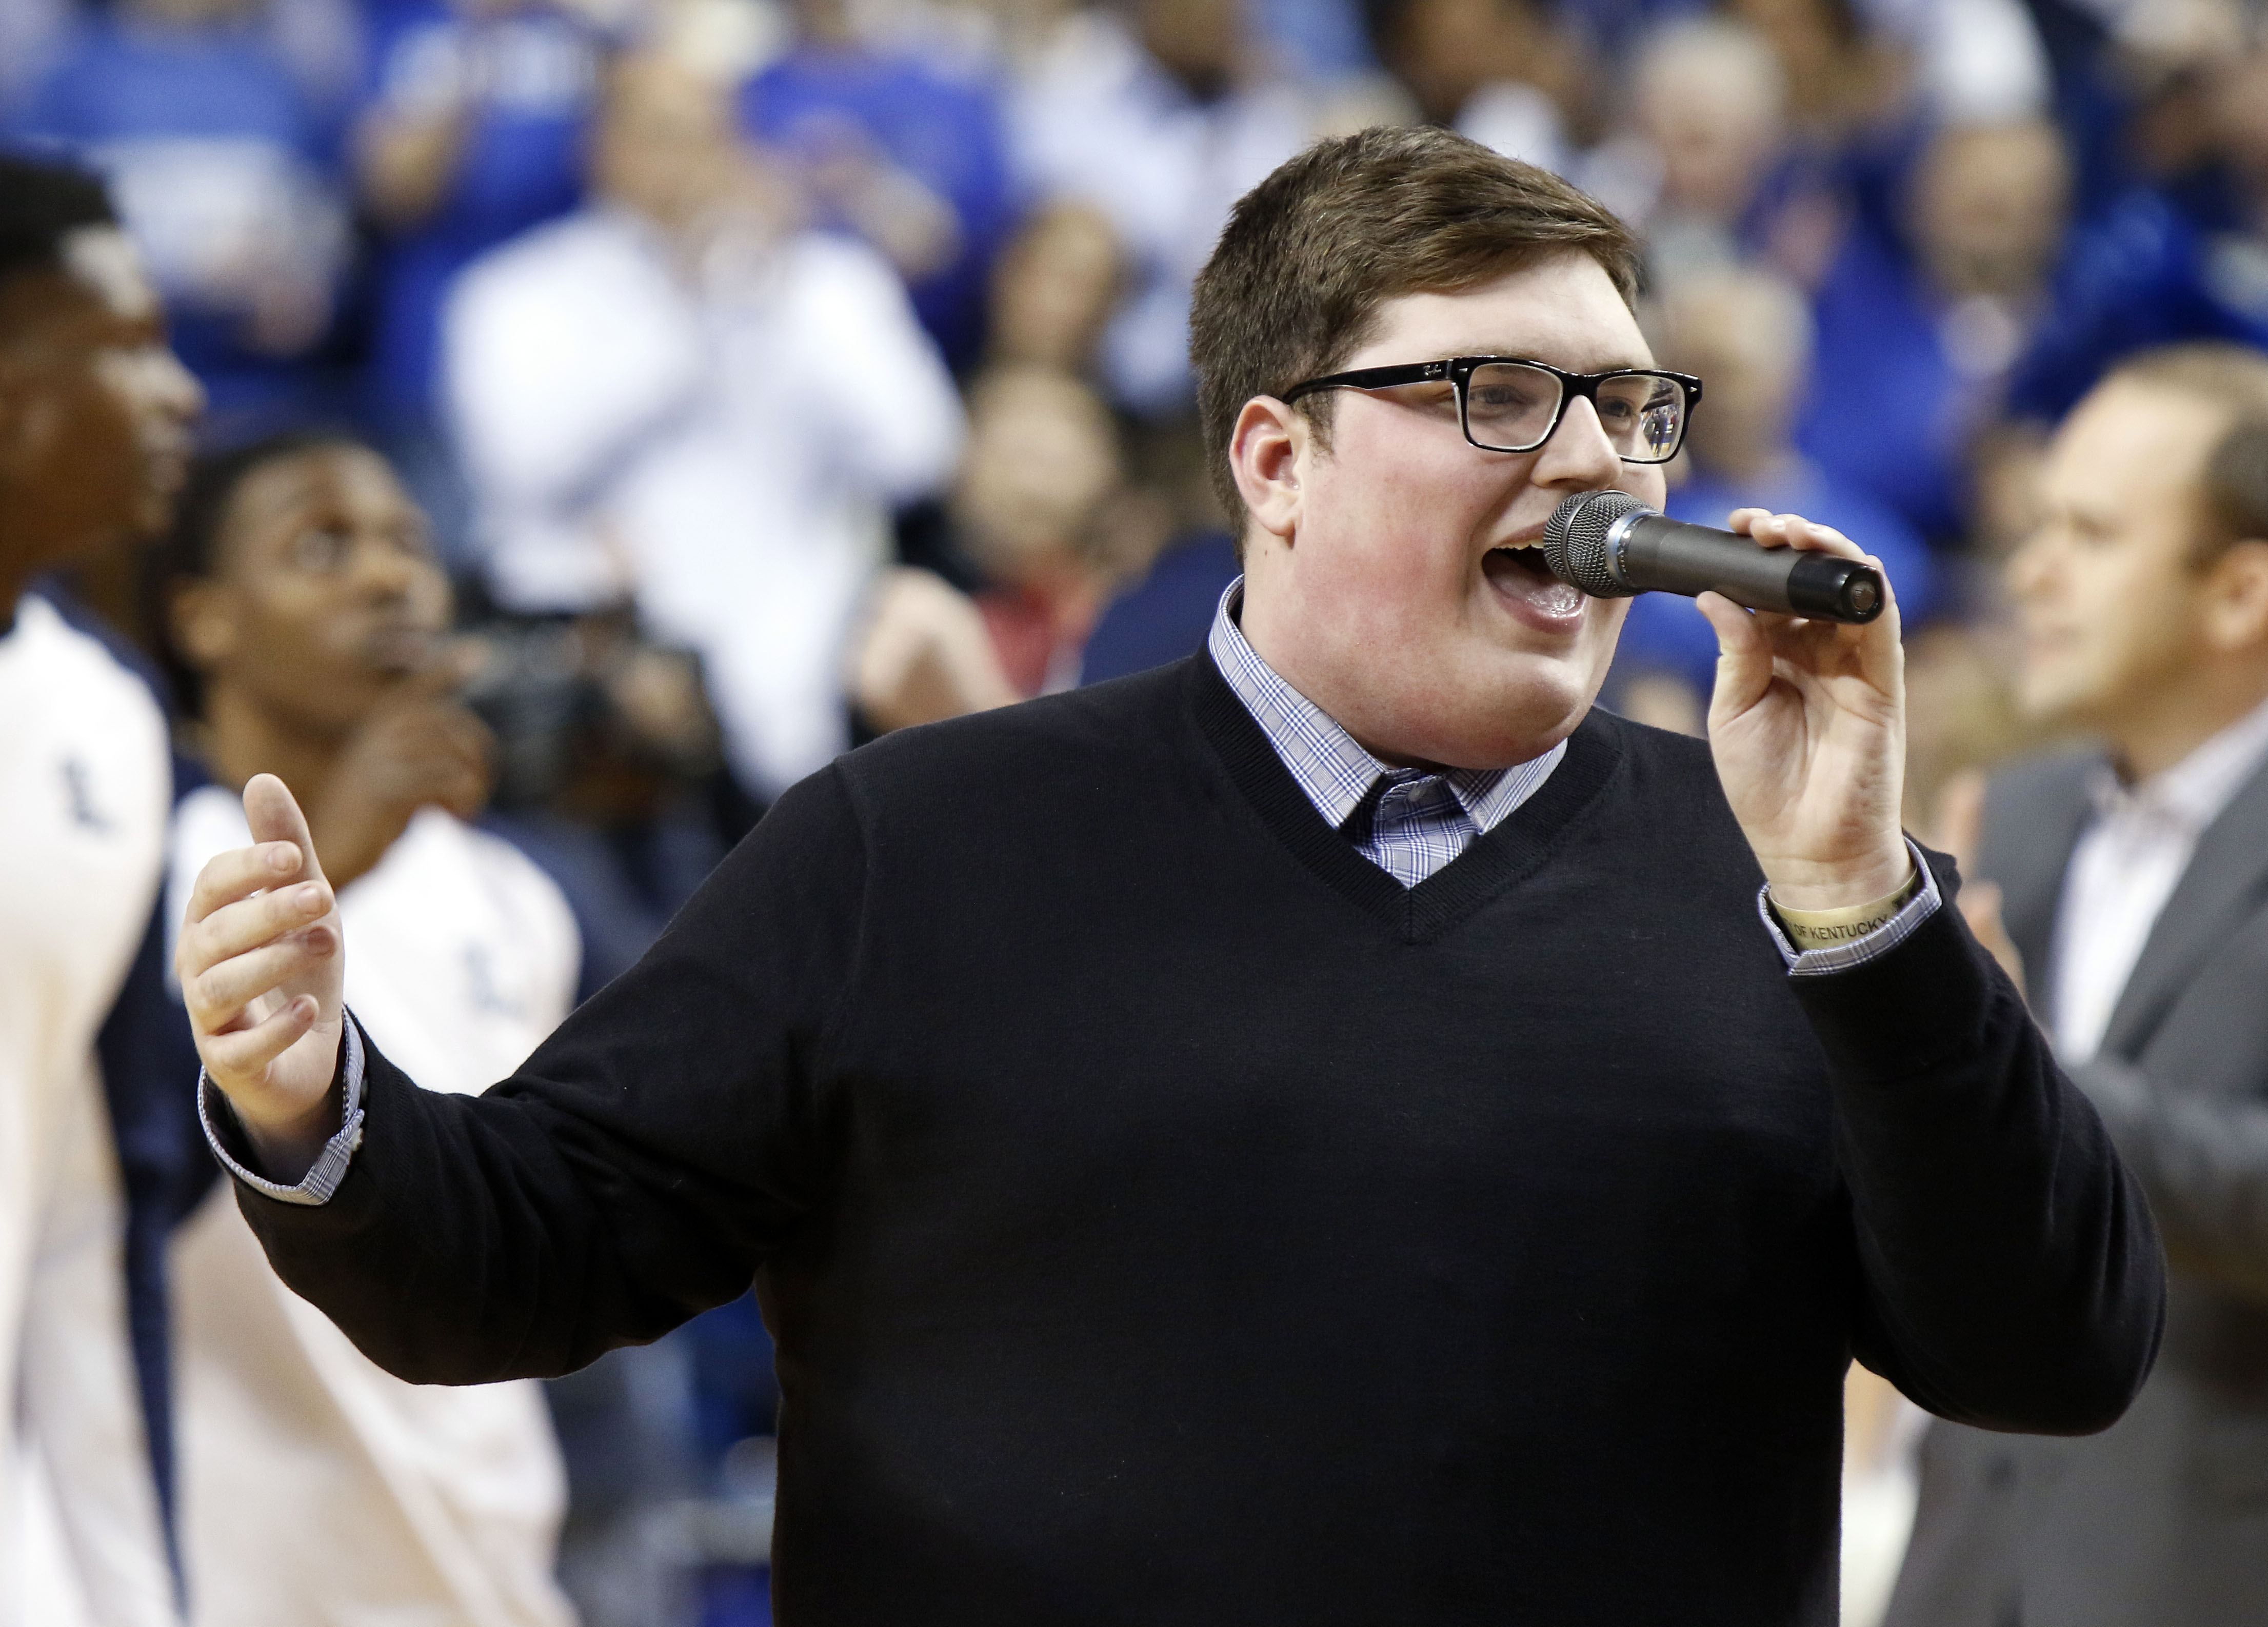 Kentucky native Jordan Smith, winner of The Voice, sings the National Anthem before an NCAA college basketball game between Kentucky and Mississippi Saturday, Jan. 2, 2016, in Lexington, Ky. (AP Photo/James Crisp)